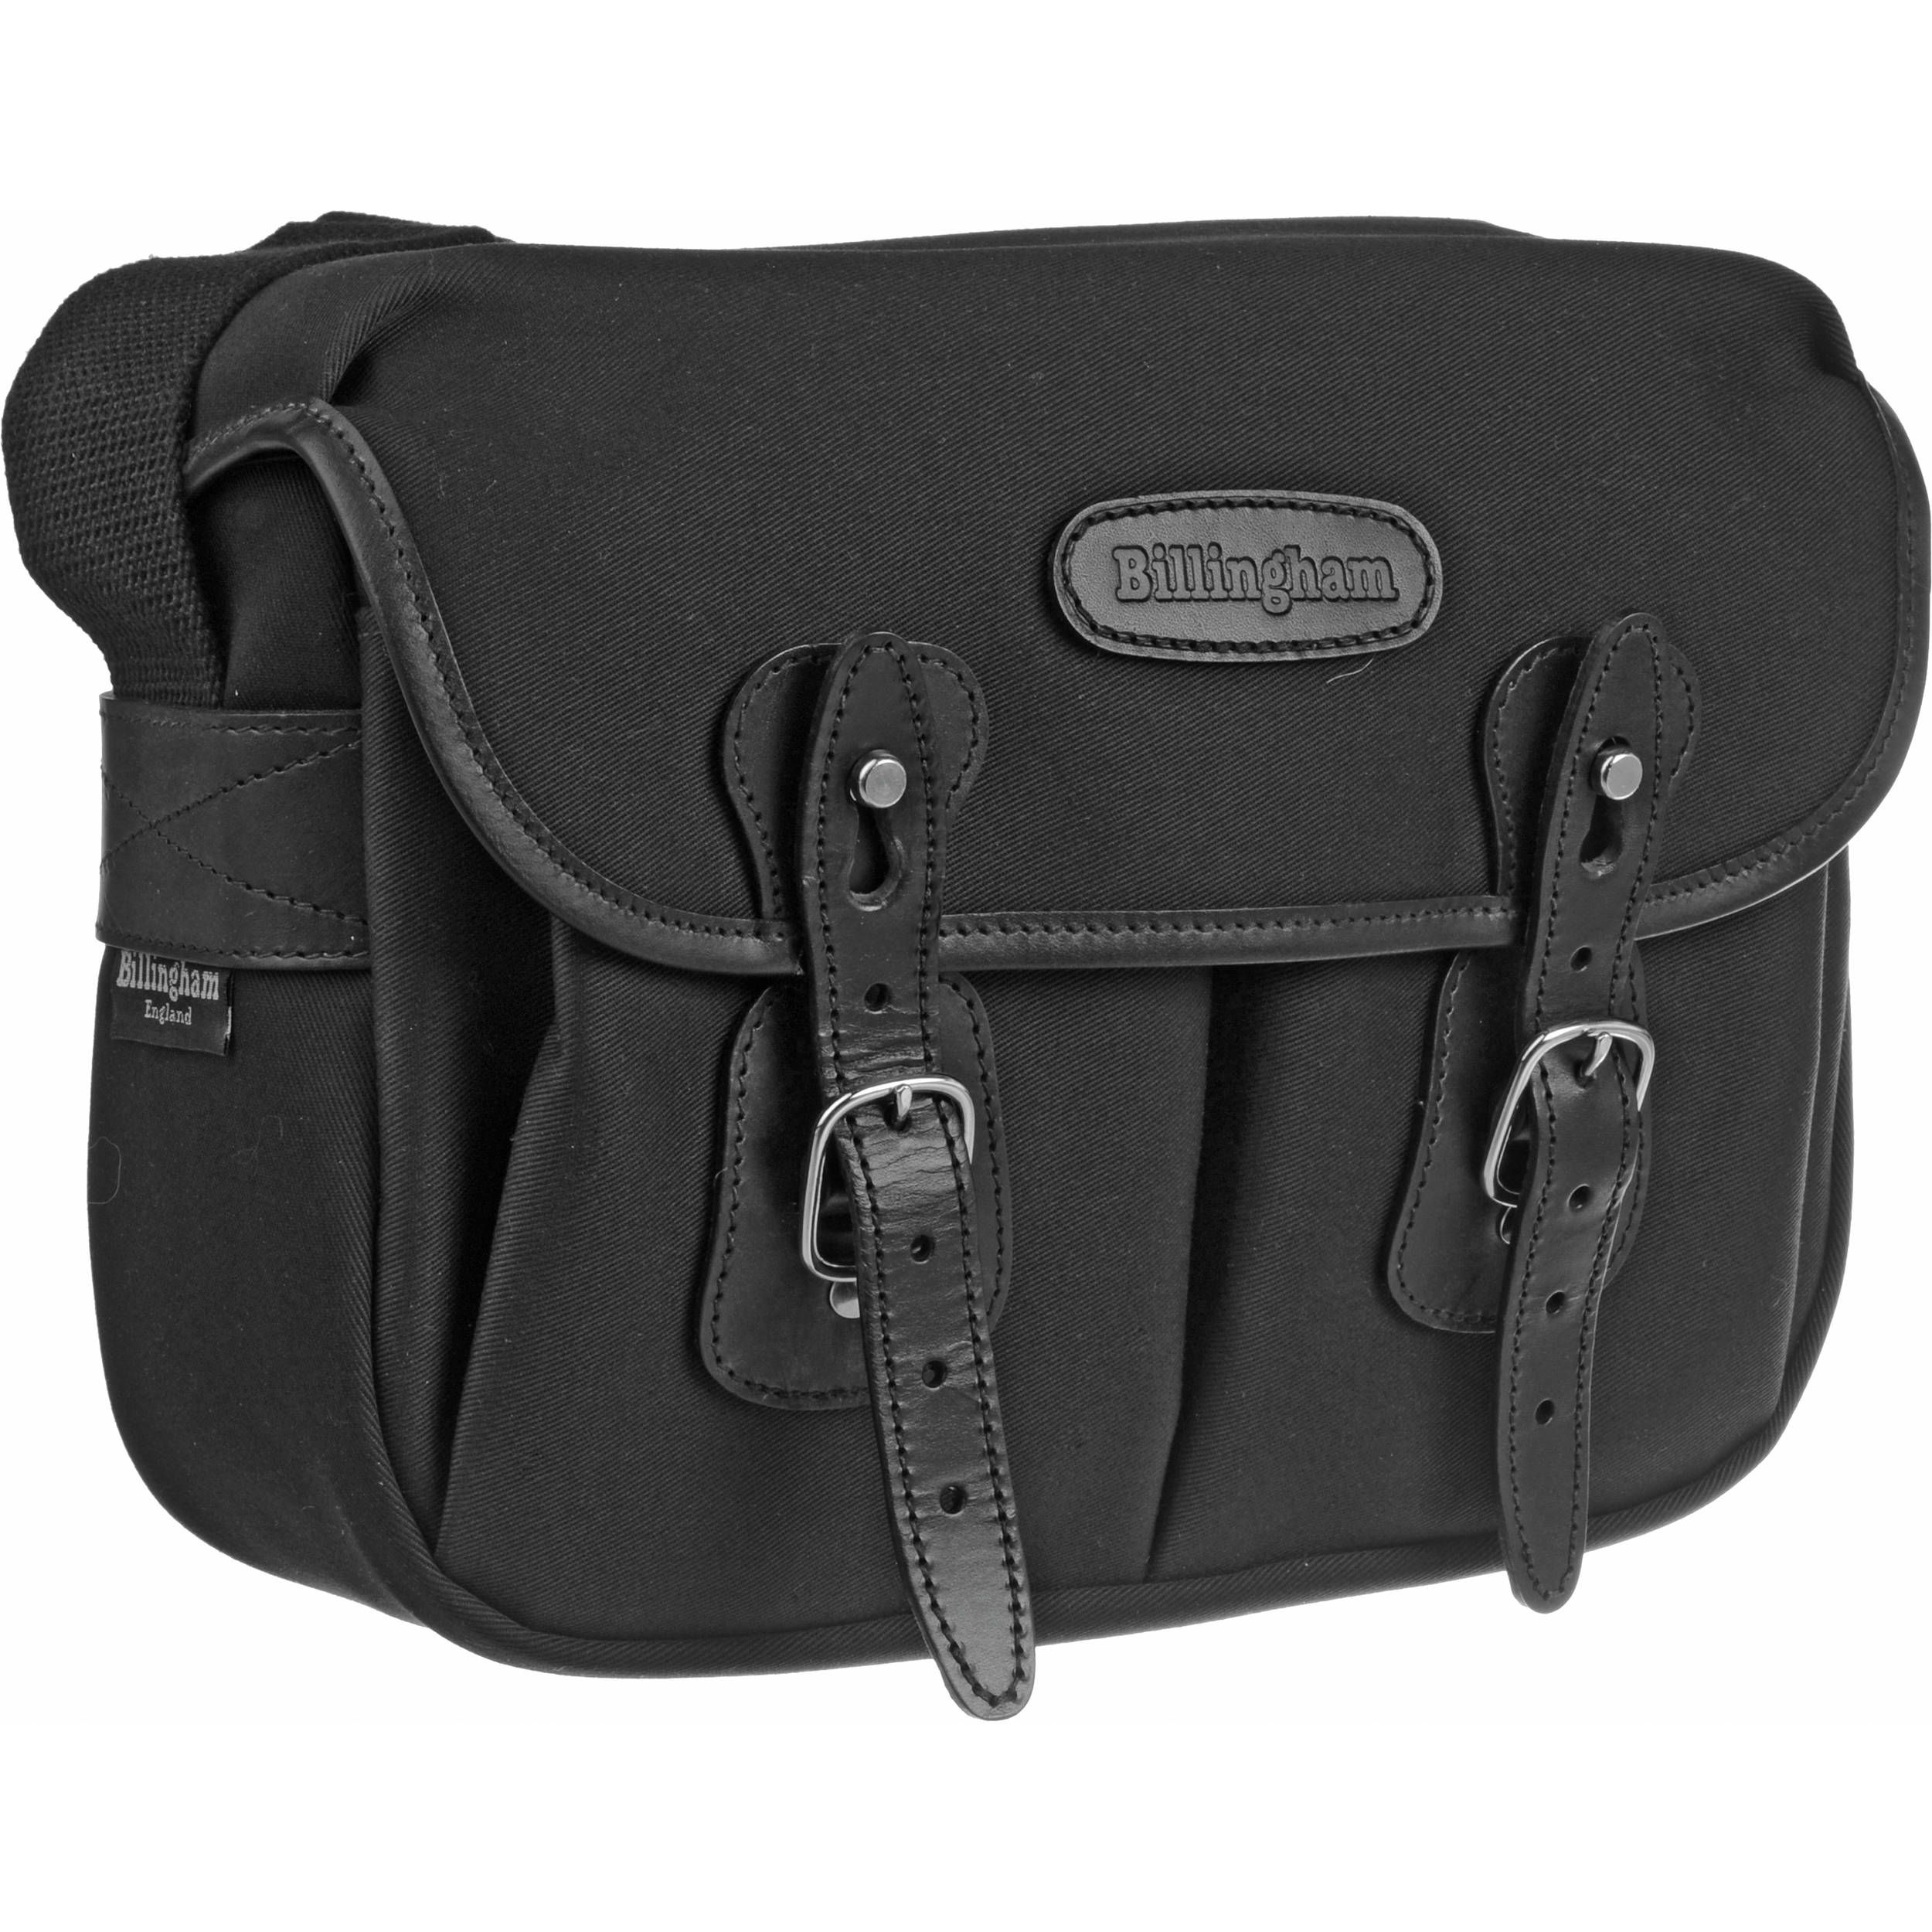 Billingham Hadley Digital Camera Shoulder Bag 90